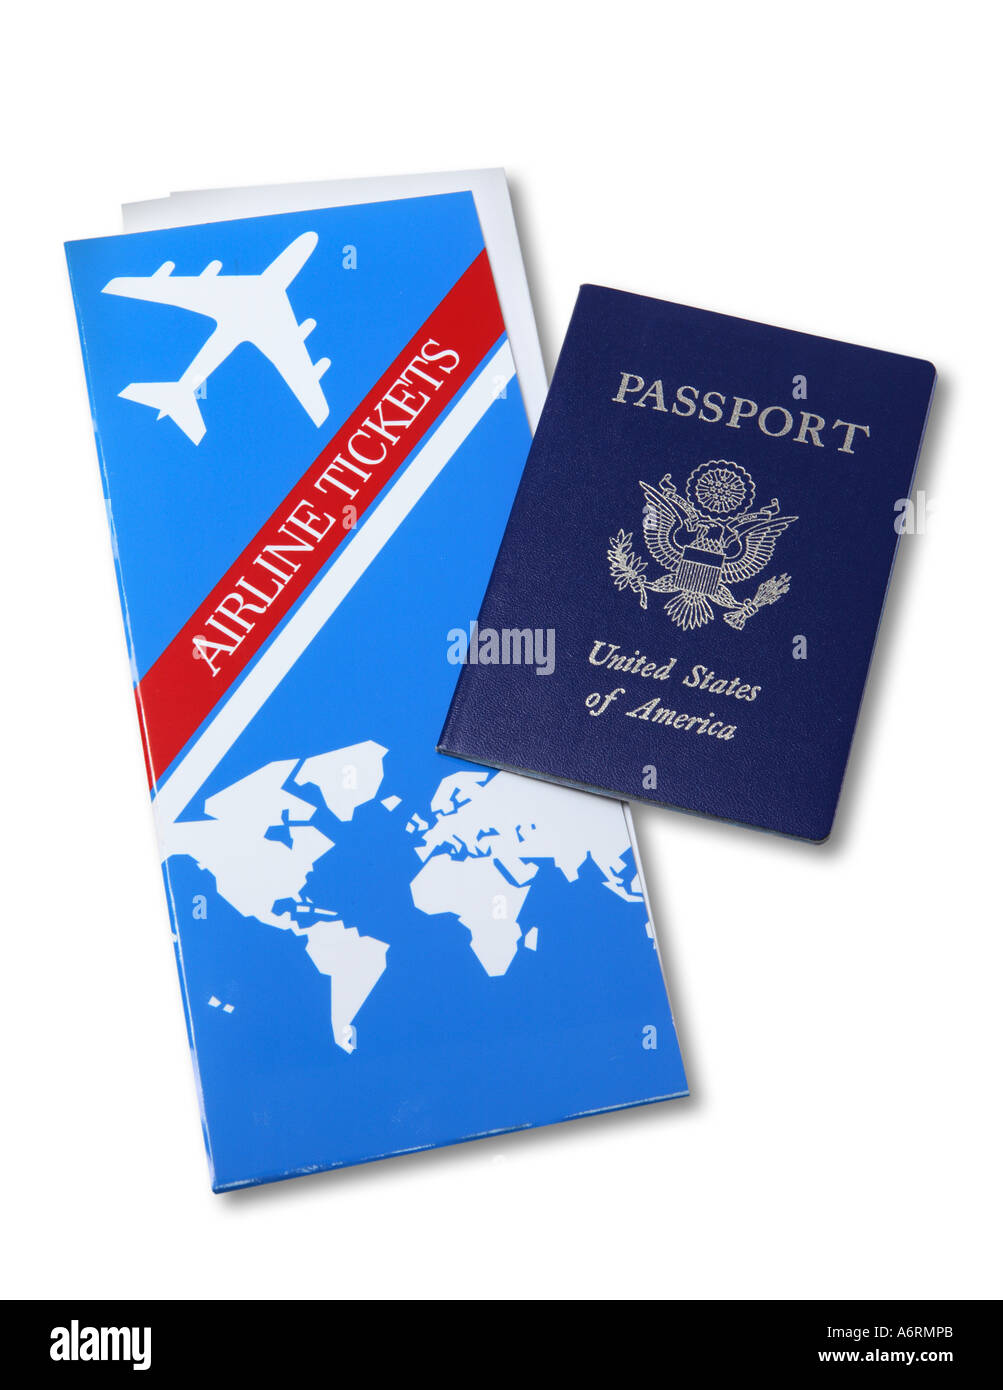 Airline tickets and US Passport - Stock Image